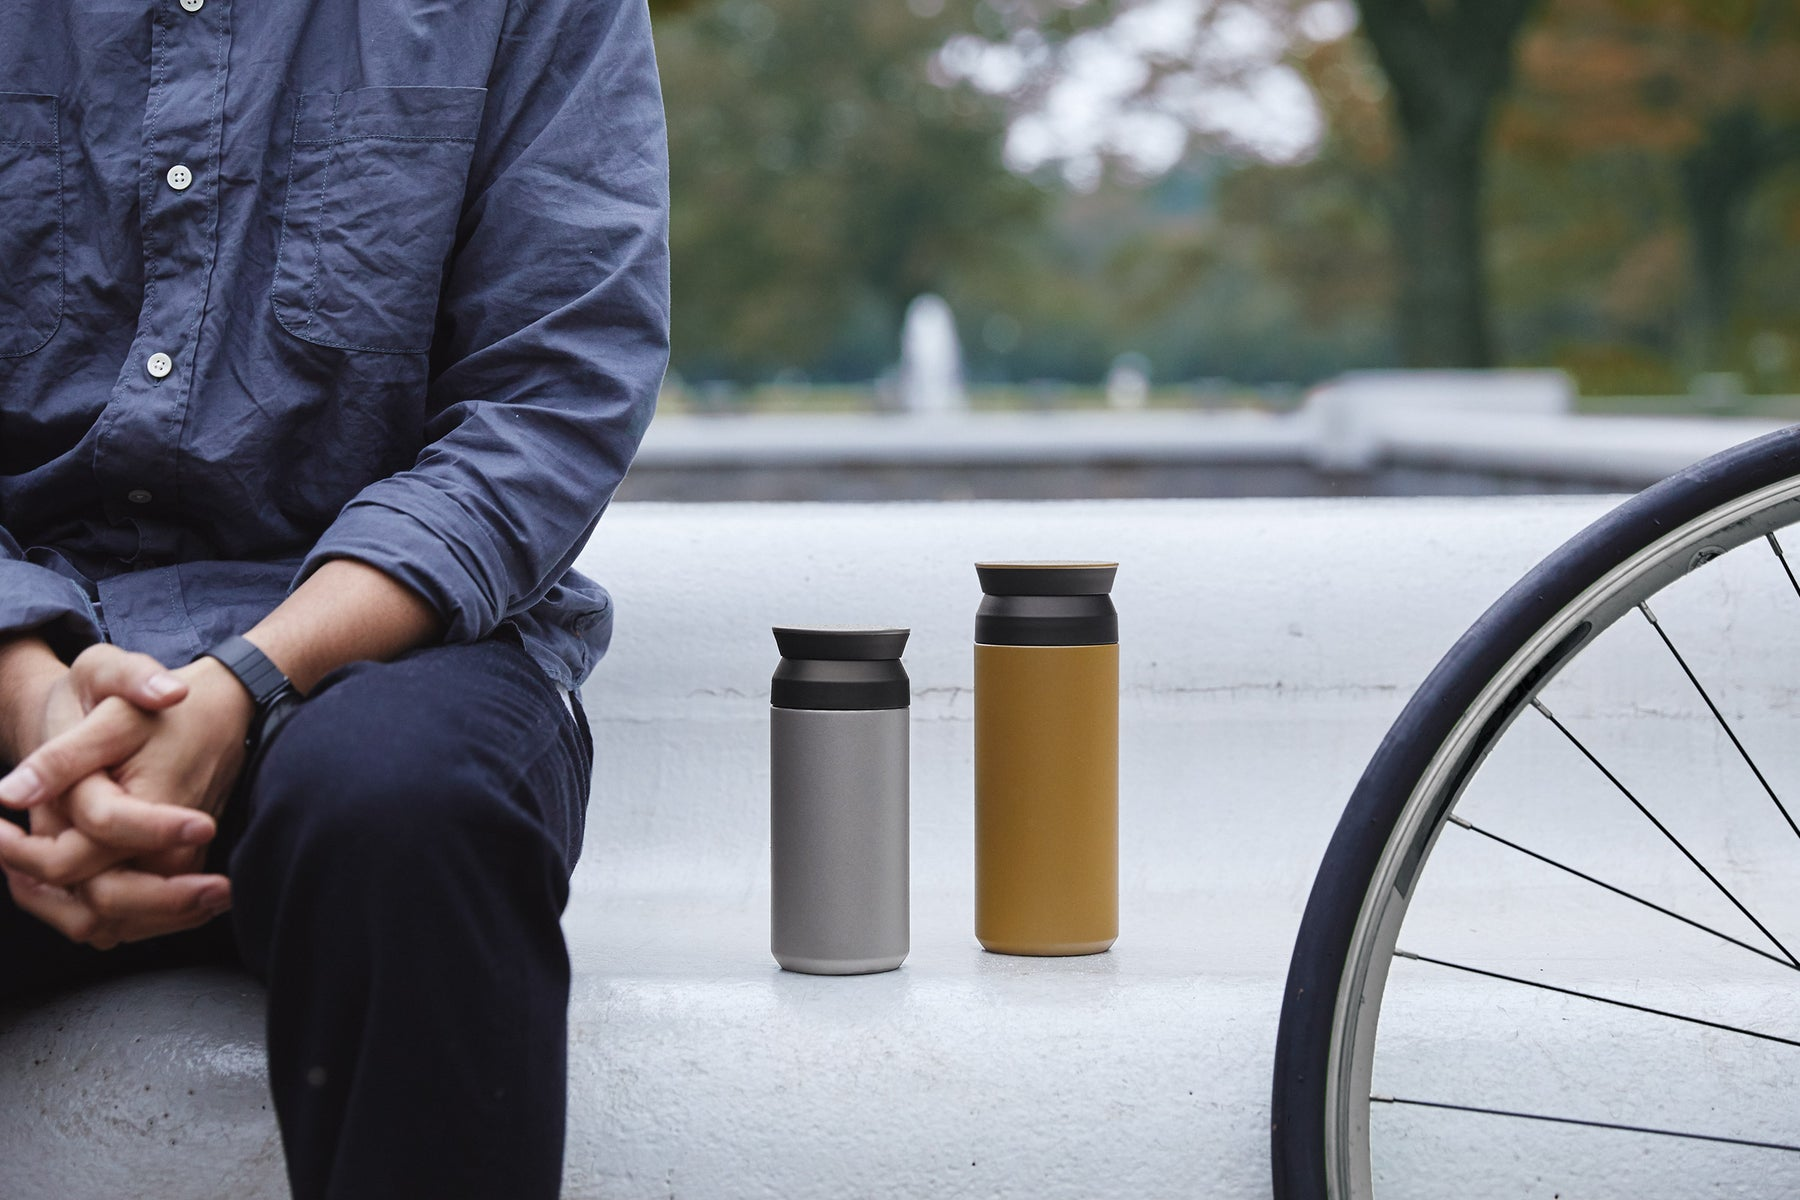 The Kinto Travel Tumbler, A Delicate Balance Between Form and Function